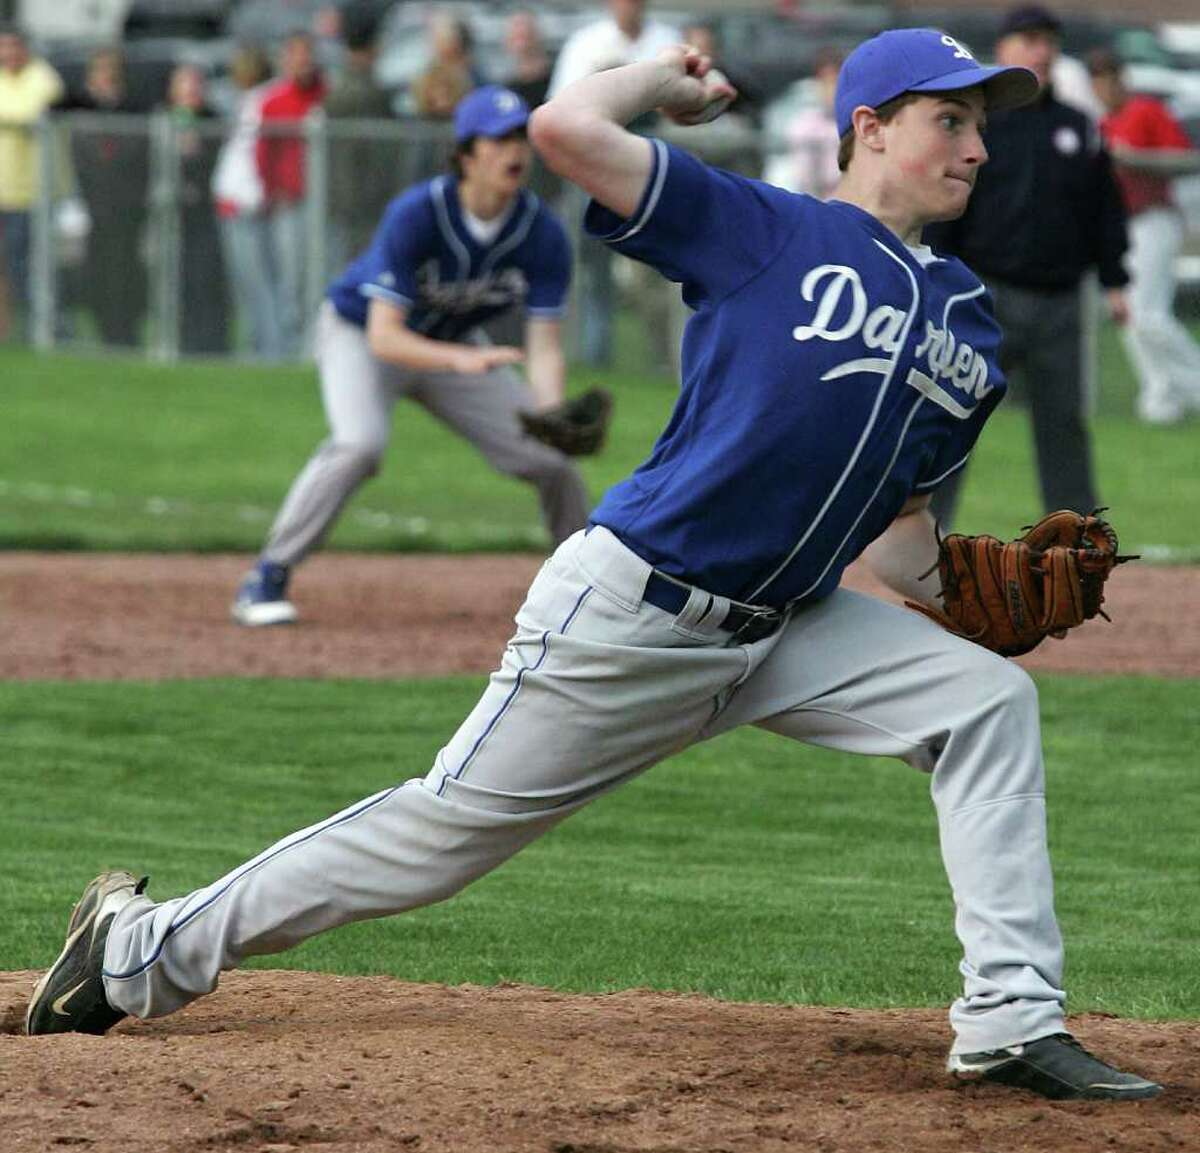 Darien's Chris Smith finished up the game against Greenwich during Friday's game in which the Cardinal's went on to win 6-5.